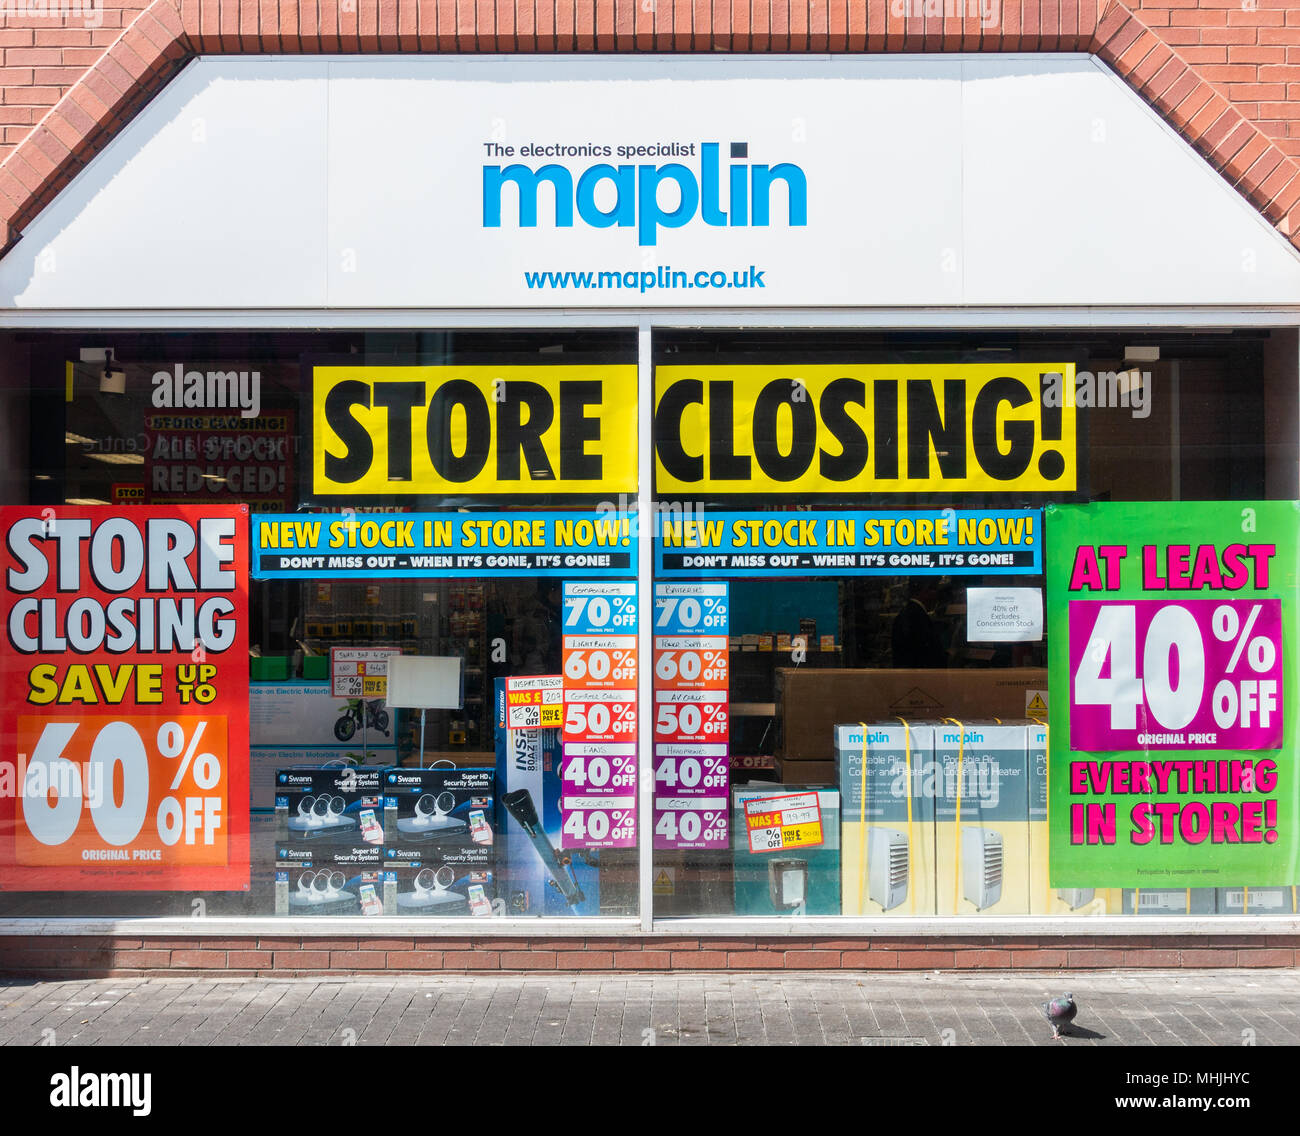 Closing down sign in Maplin store window in Middlesbrough, England. UK - Stock Image